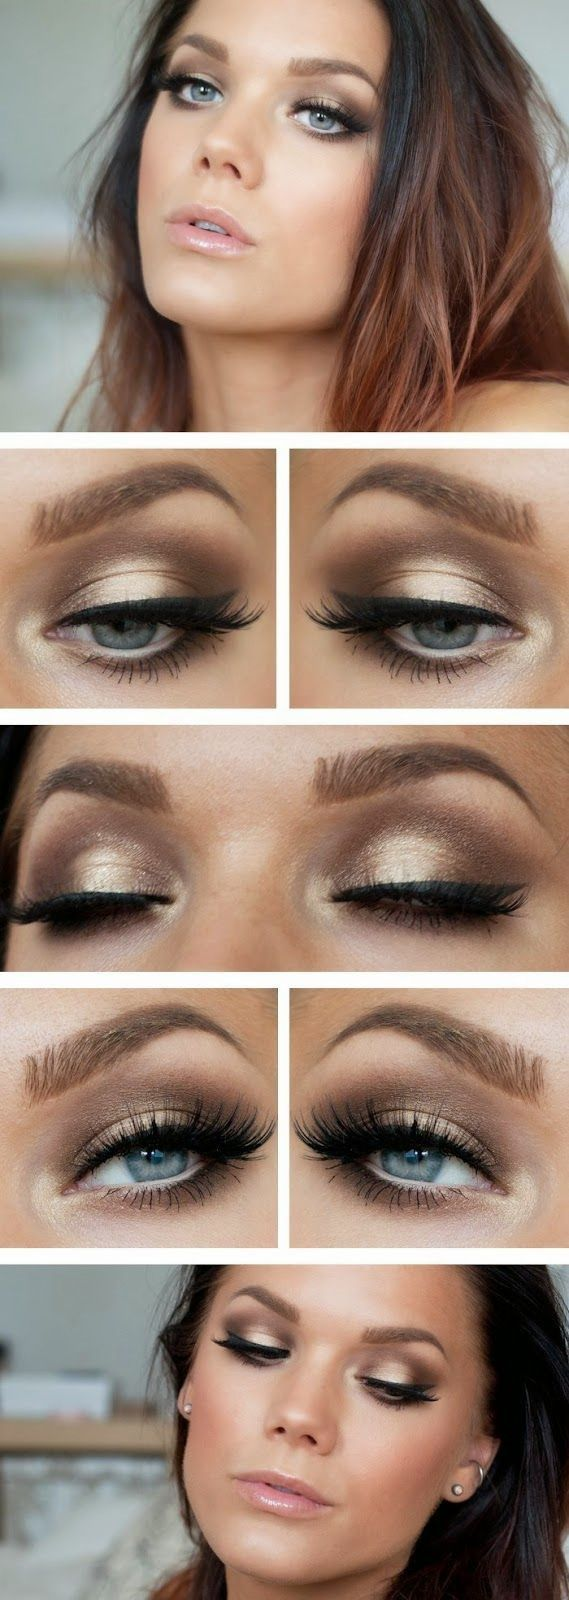 10 Bronze Makeup Tutorials For Girls With Images Bronzed